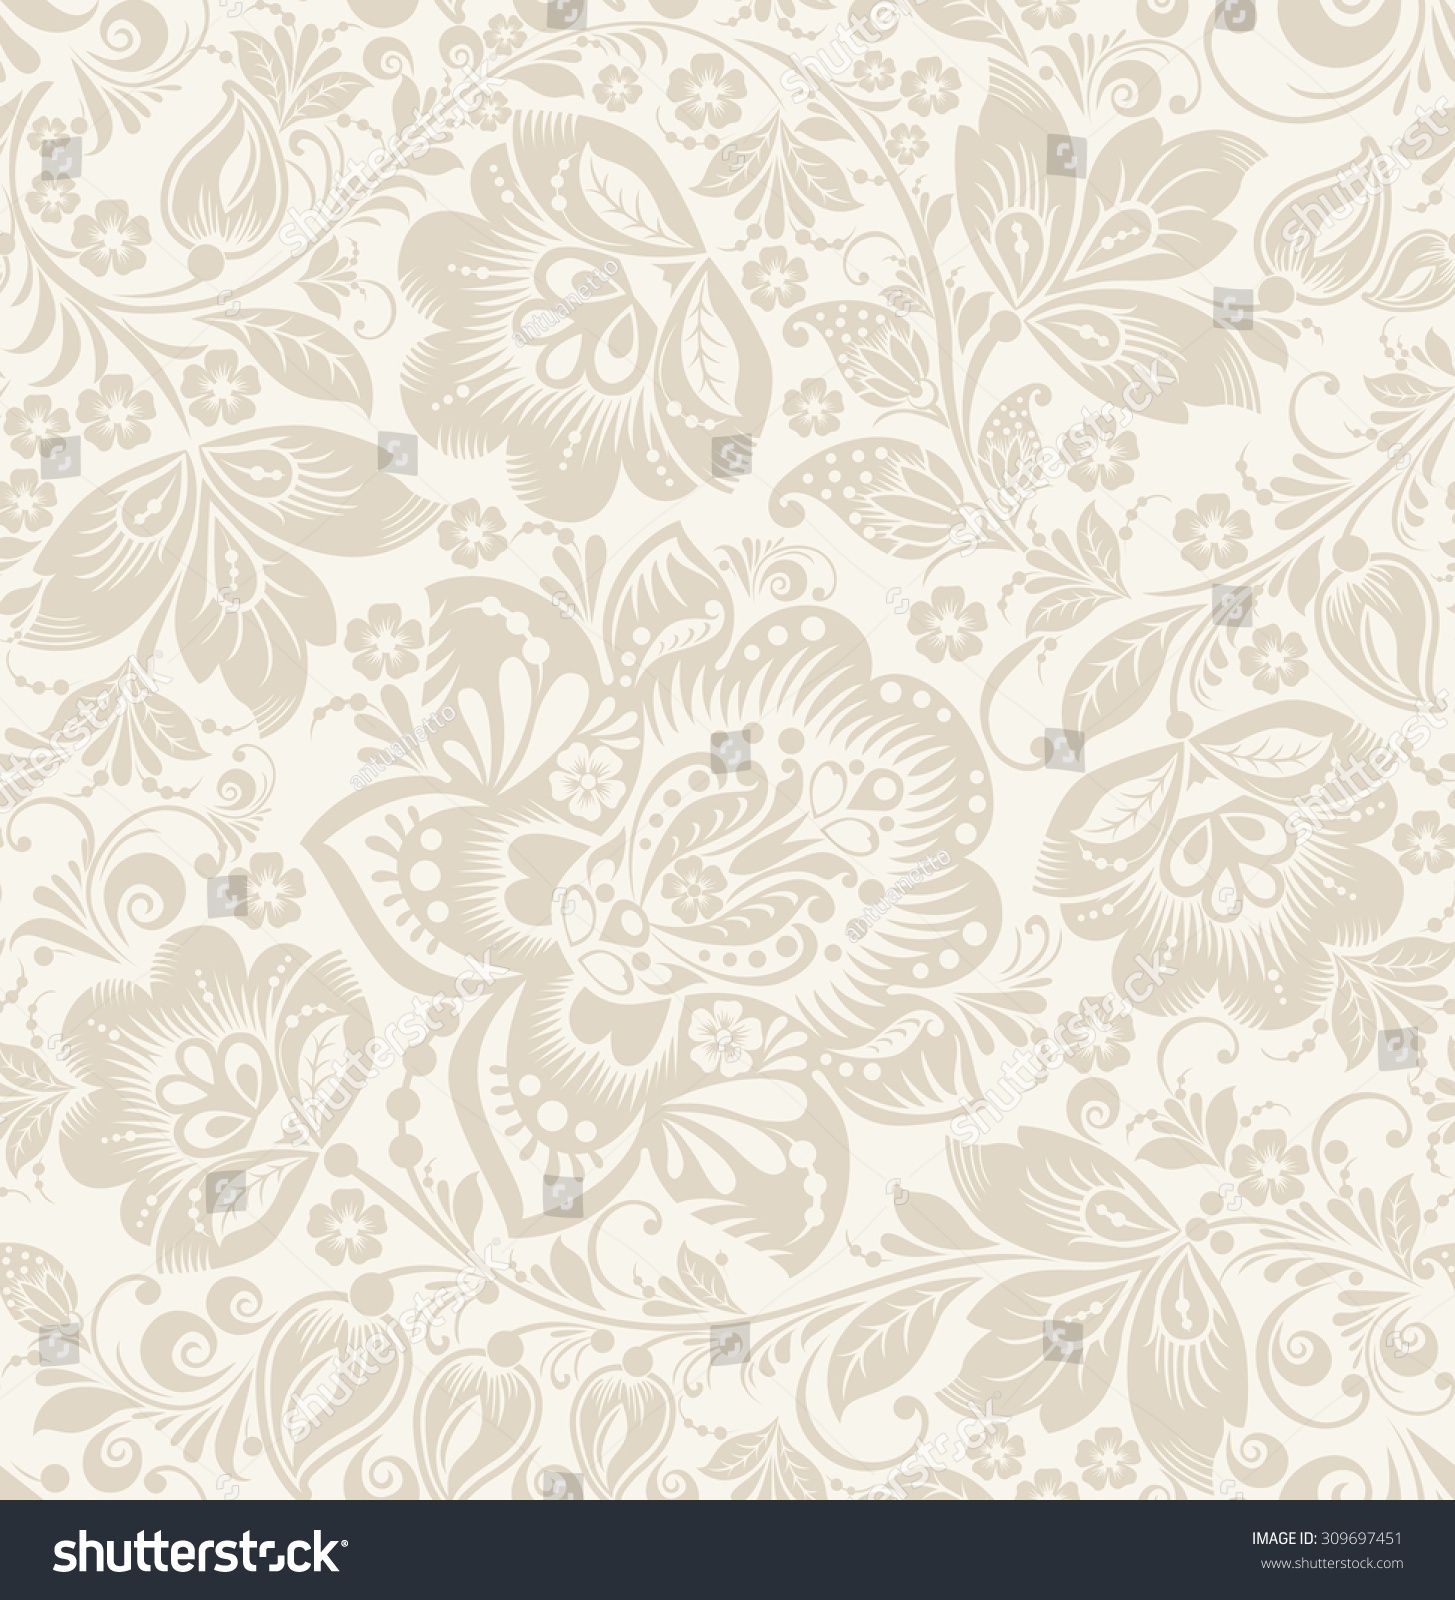 Rustic Scroll Design: Vector Floral Vintage Rustic Seamless Pattern. Background